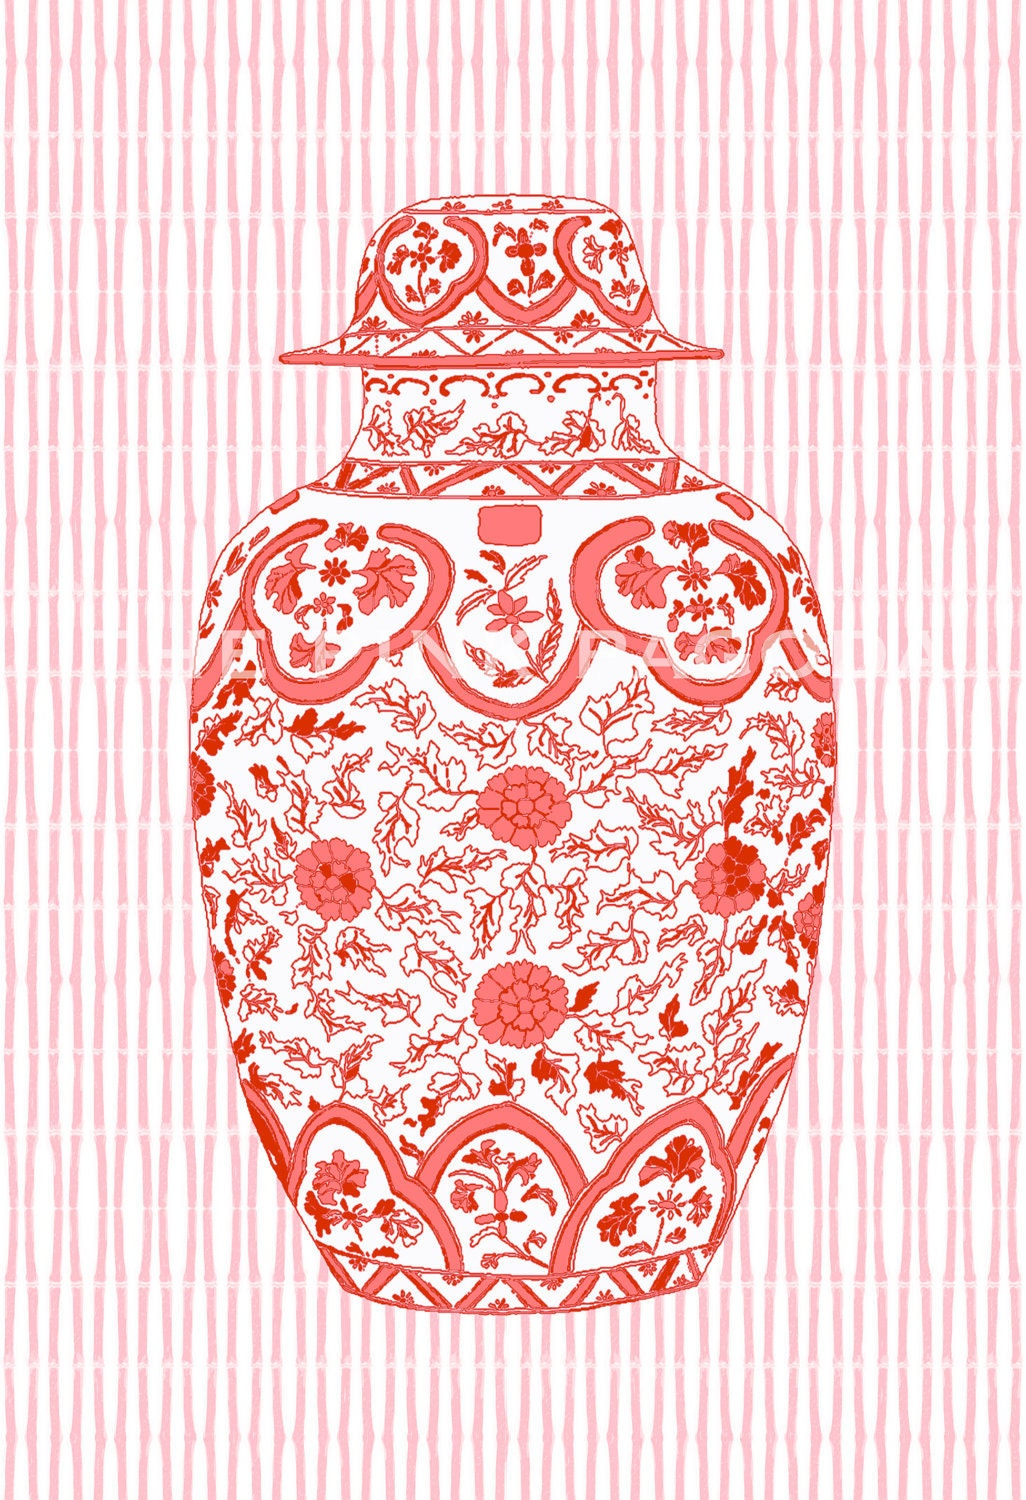 Coral Ming Chinoiserie Ginger Jar on Bamboo Stripe 13x19 Giclee